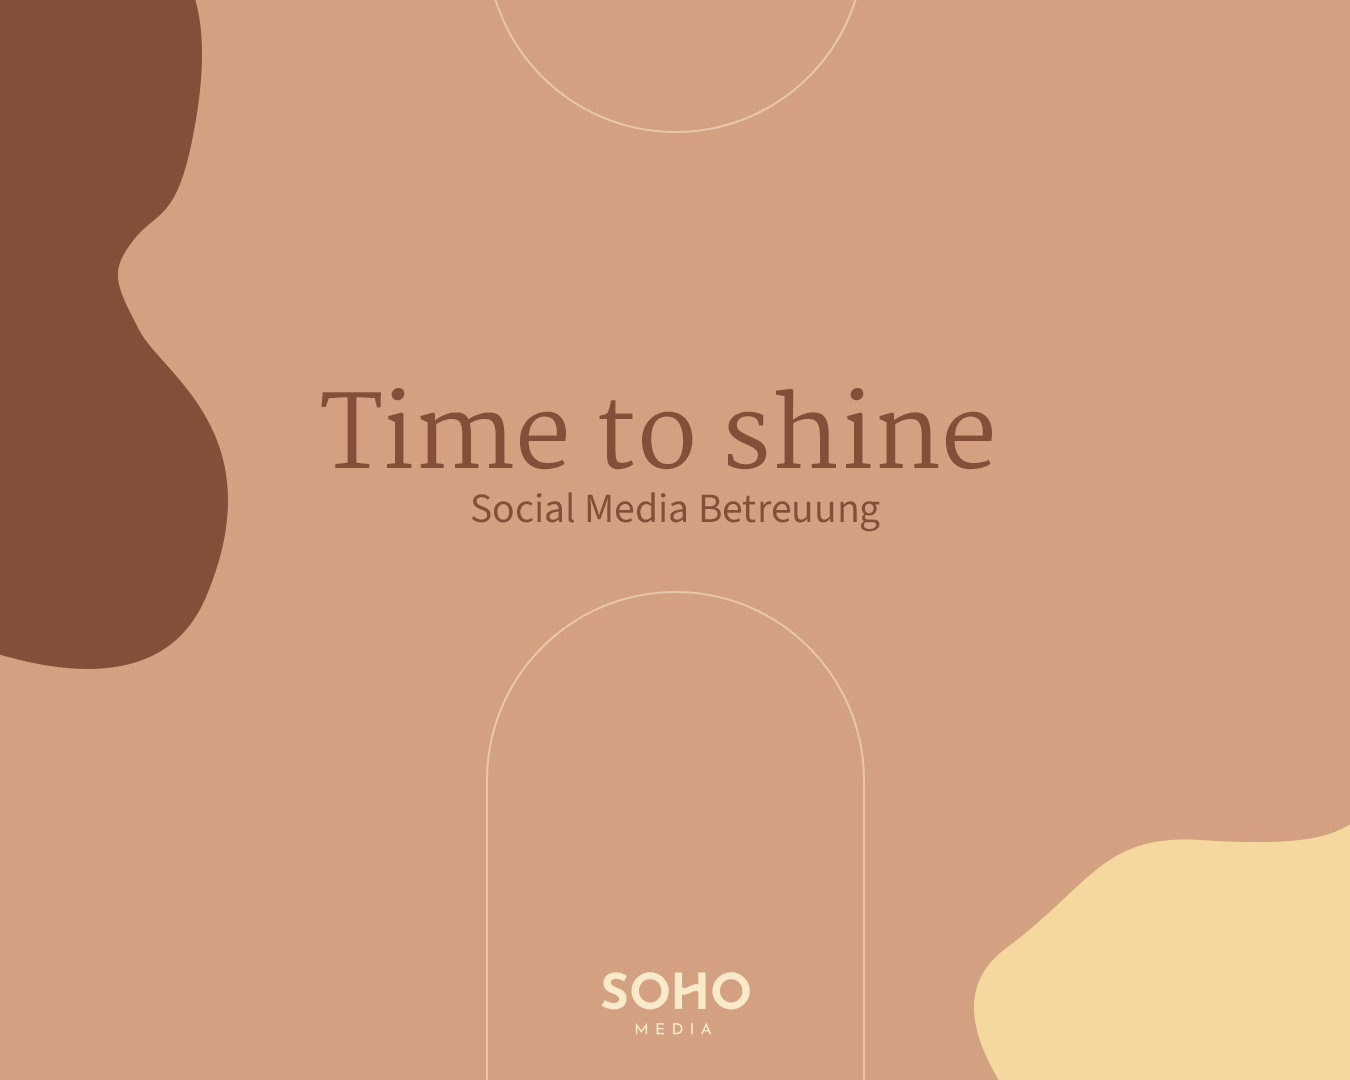 Social Media Betreuung - Time to Shine